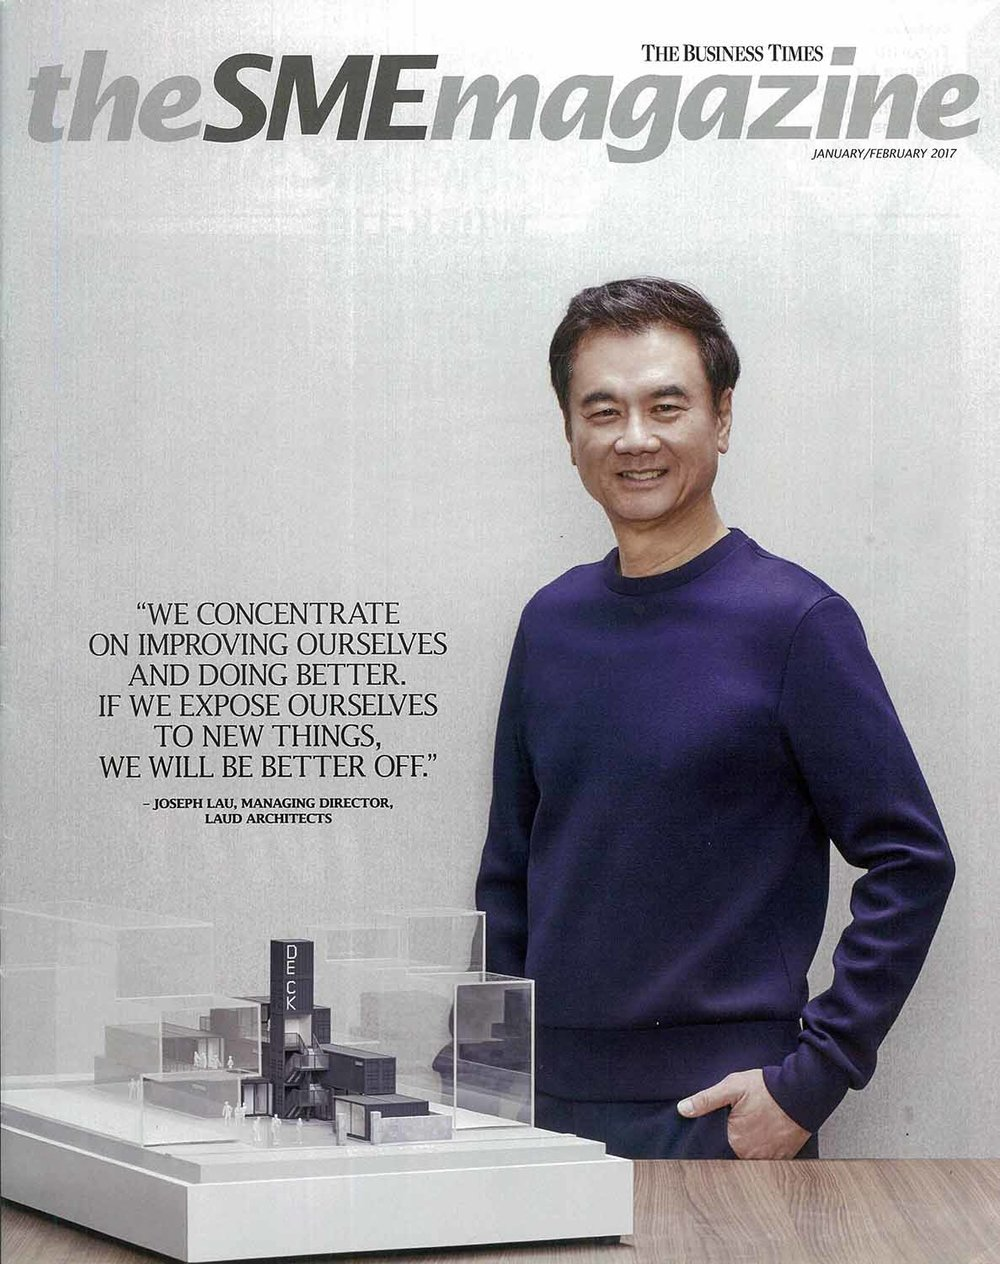 SME Magazine feature, Jan 2017 issue